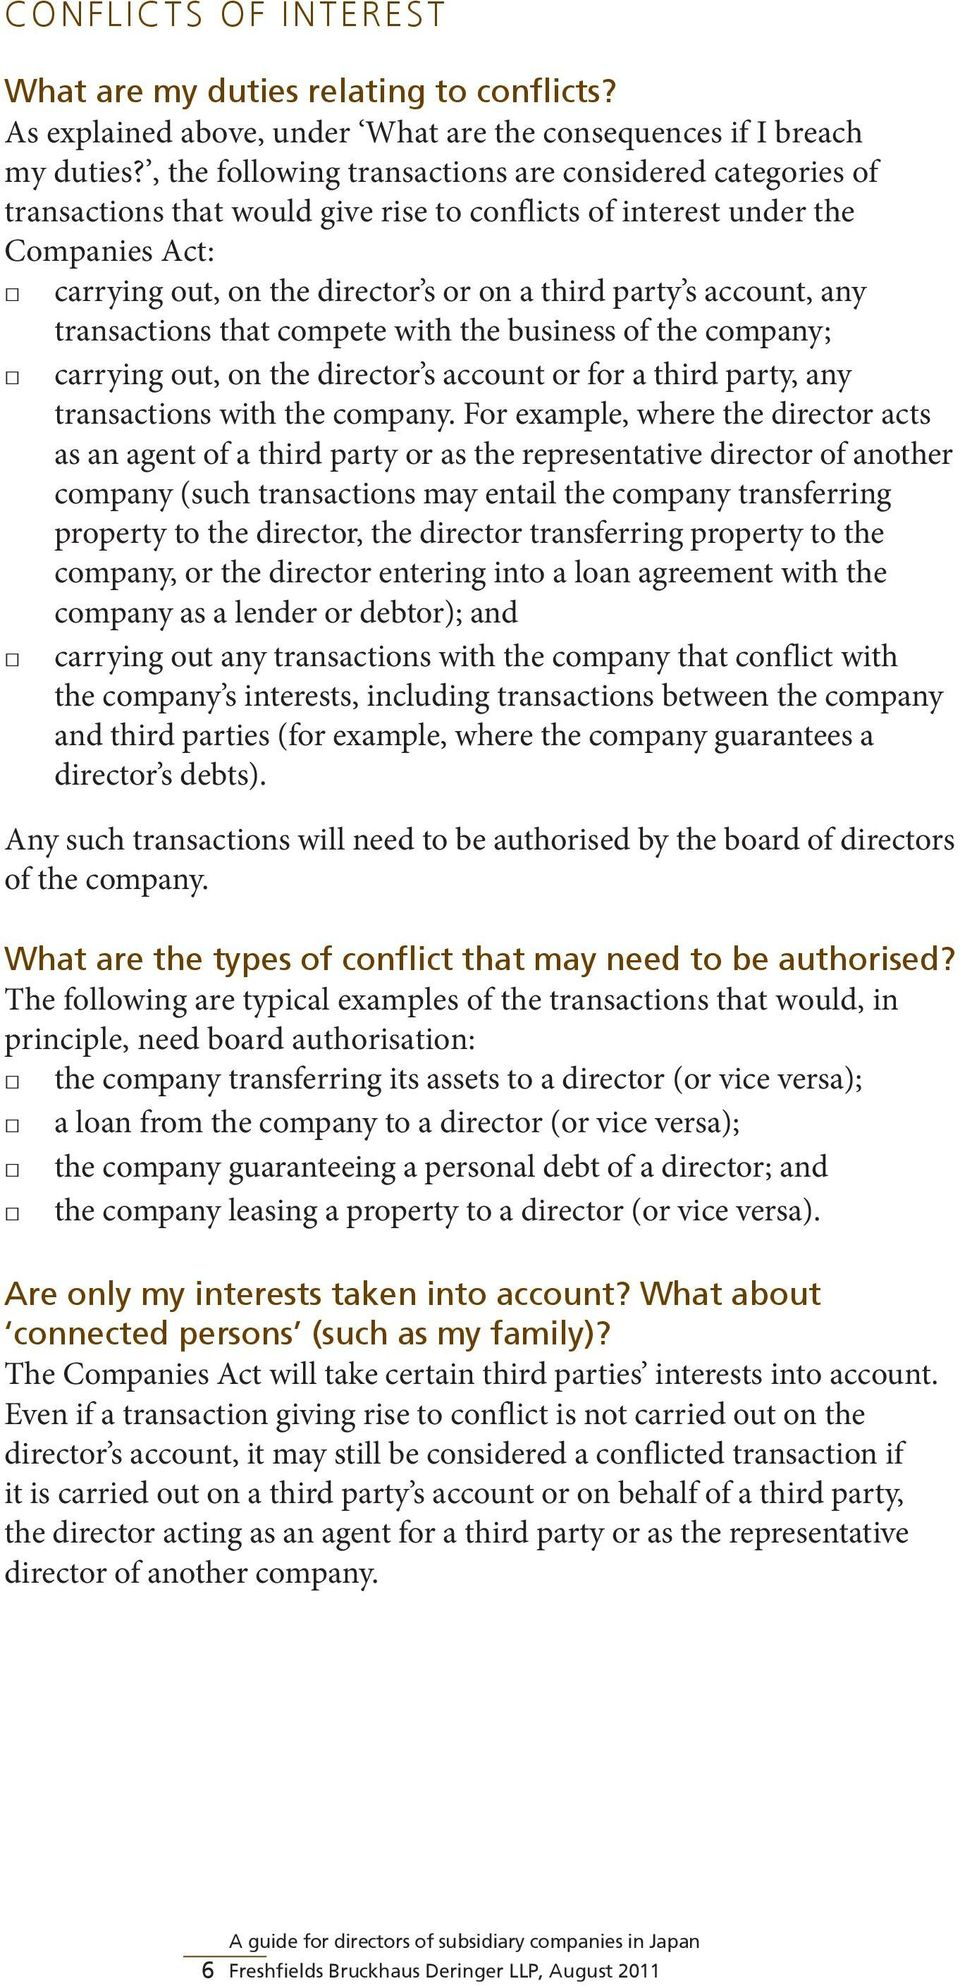 account, any transactions that compete with the business of the company; carrying out, on the director s account or for a third party, any transactions with the company.